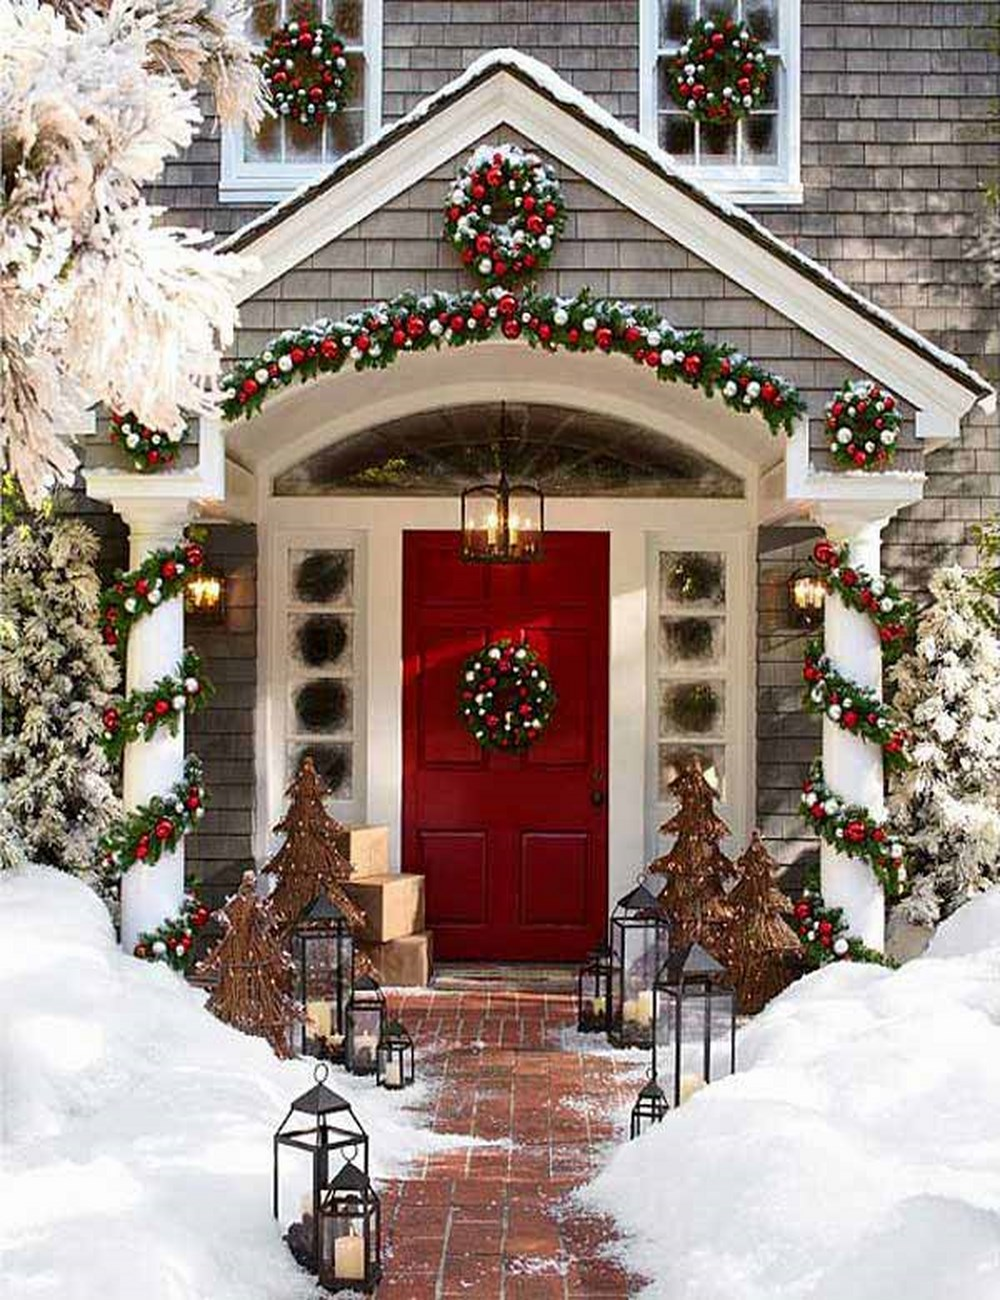 24 Festive Ideas for Outdoor Christmas Decorations